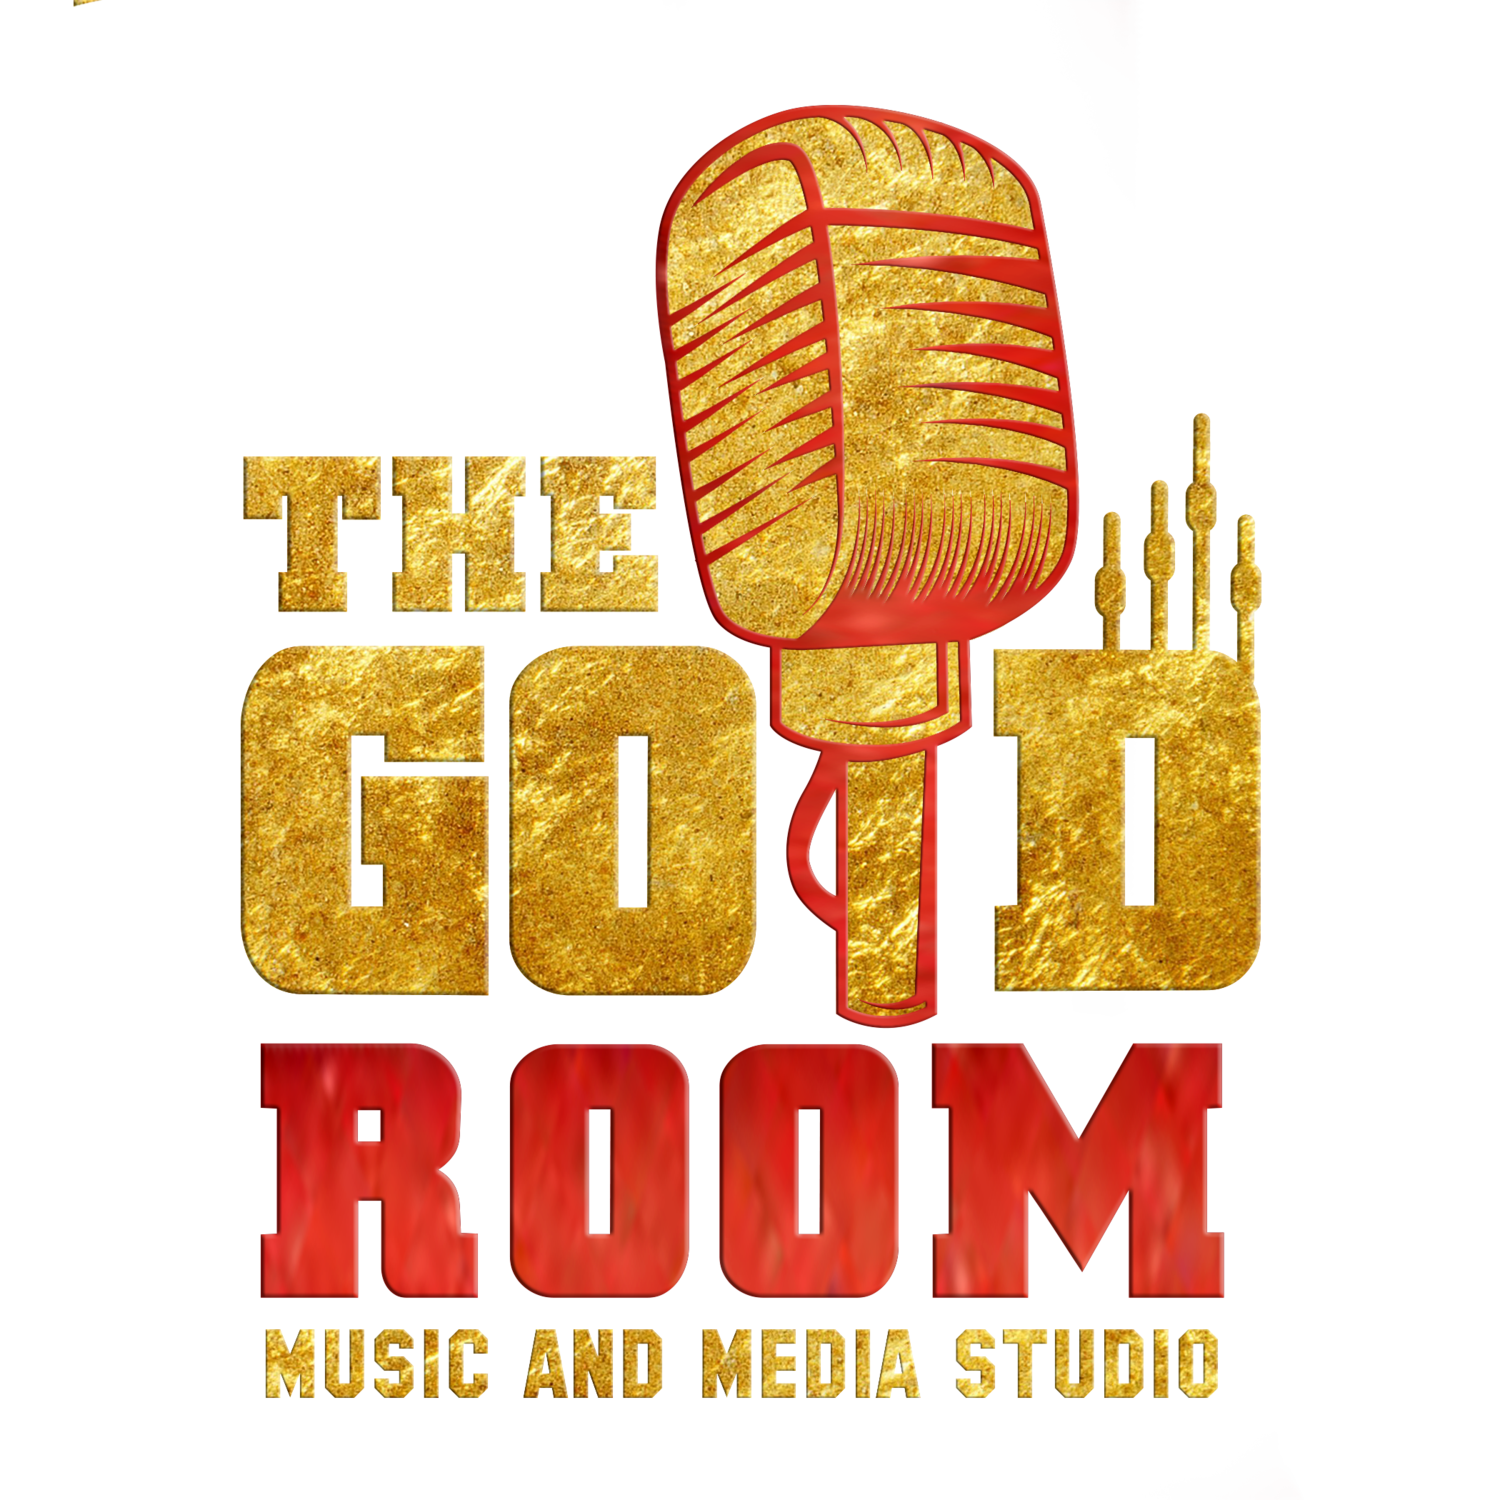 Gold Room Music and Media Studio